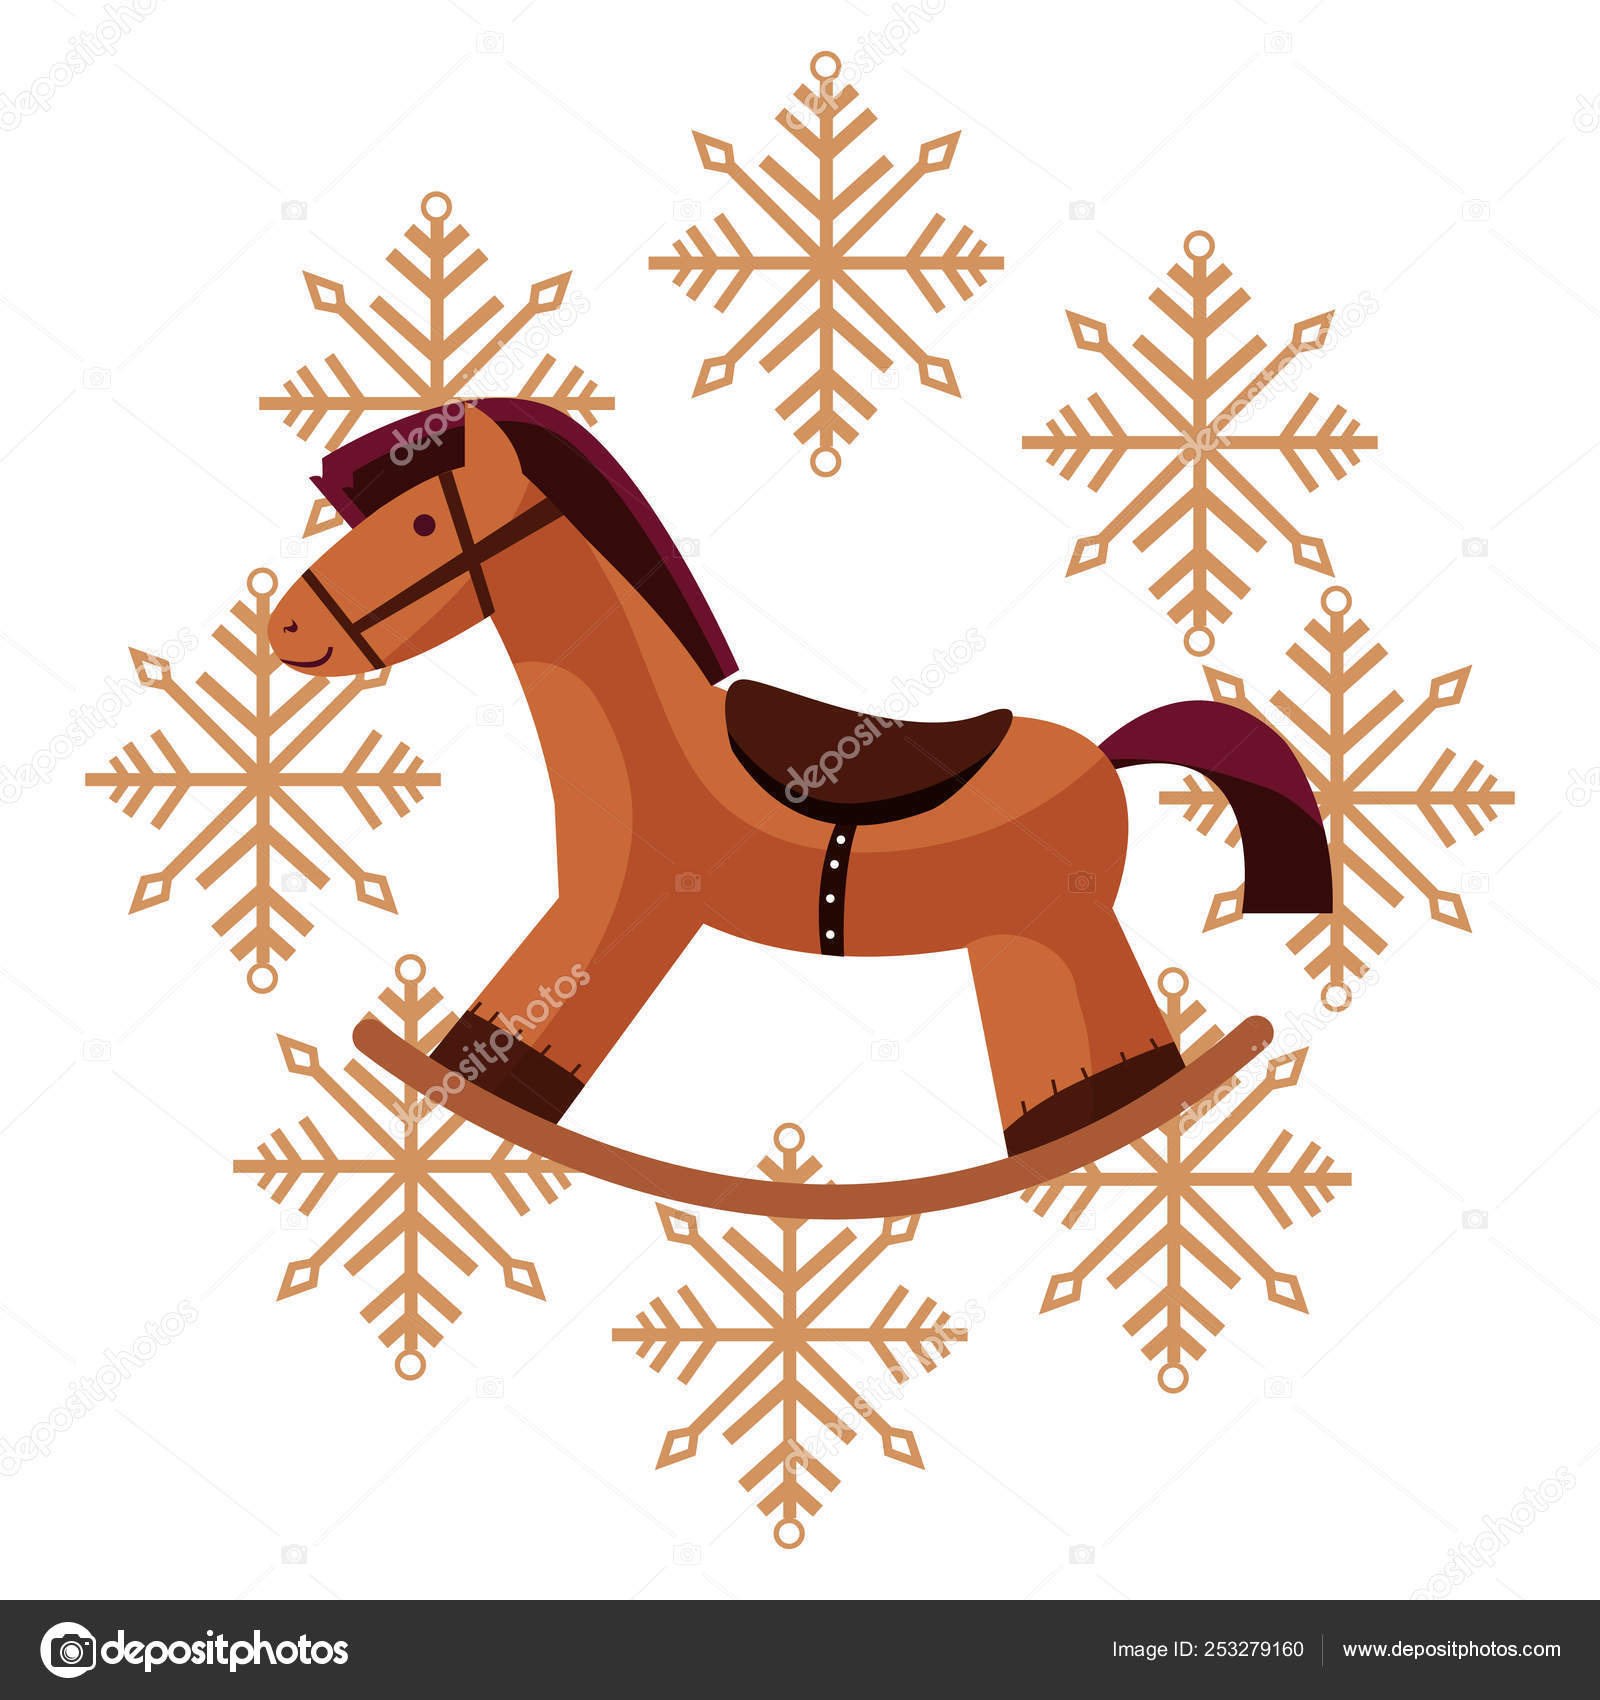 Christmas Rocking Horse Snowflakes Decoration Stock Vector C Djv 253279160